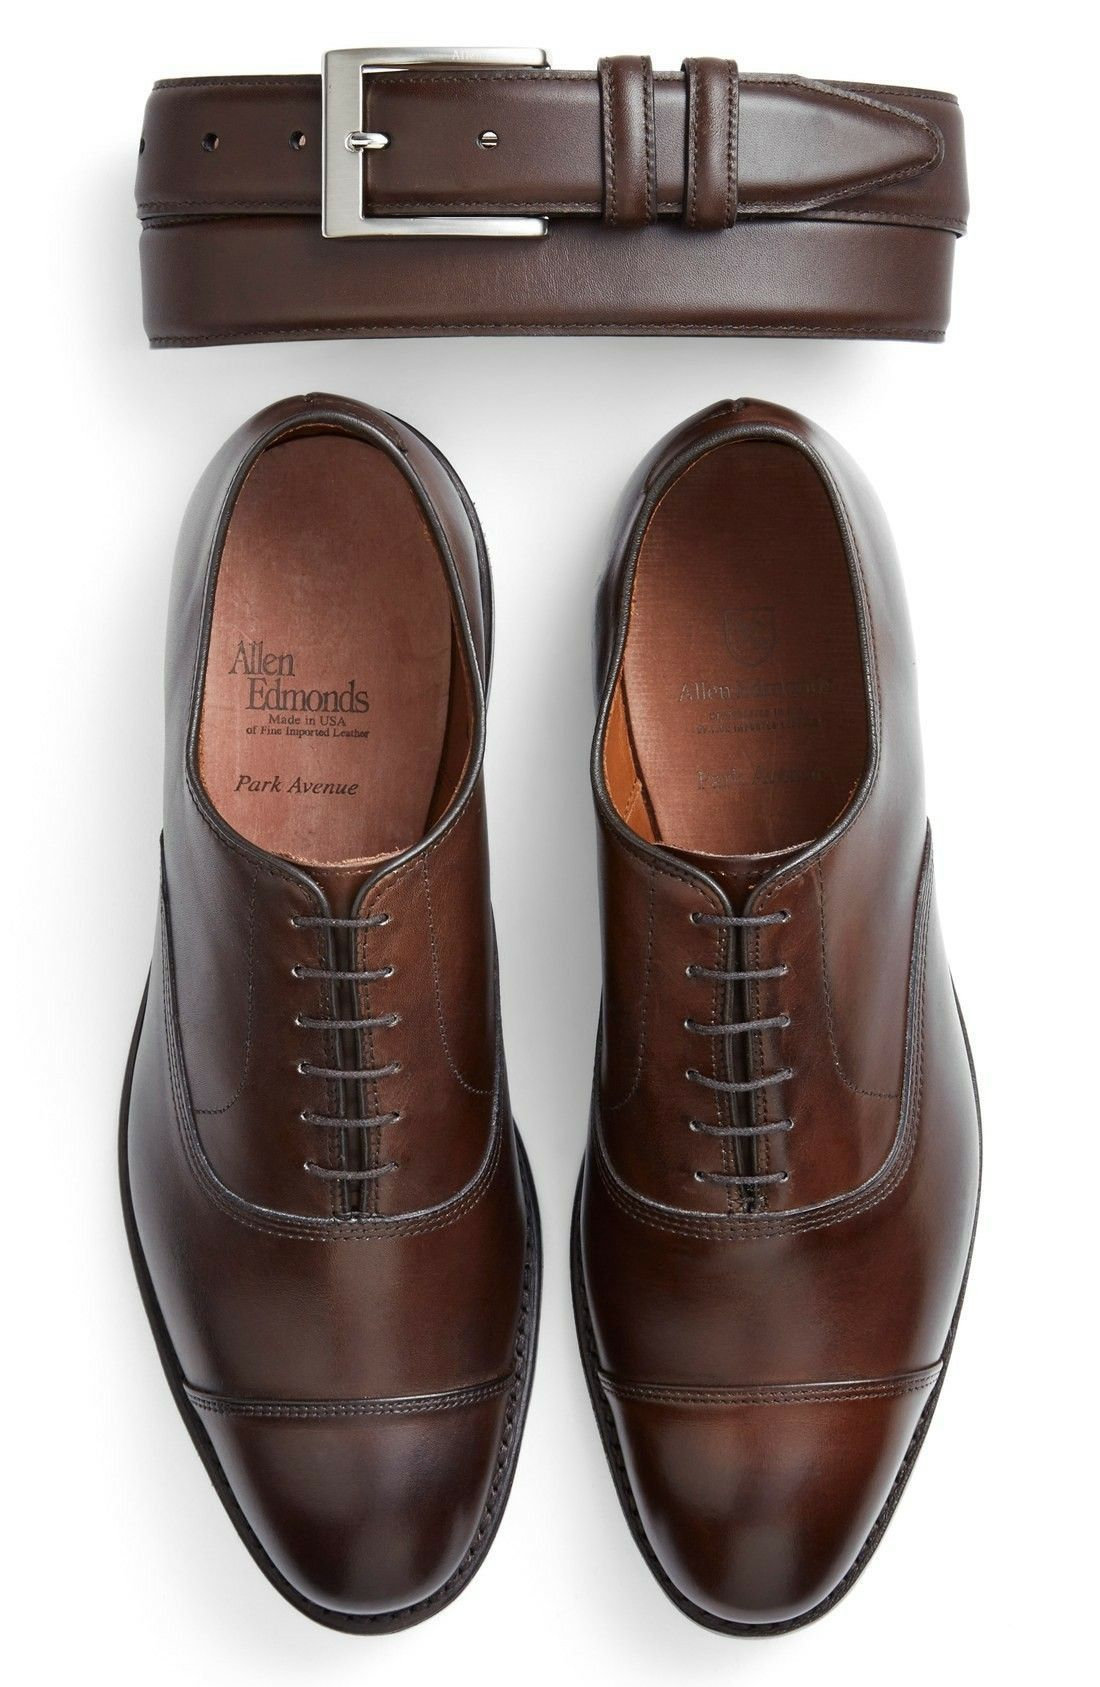 Allen Edmonds Park Avenue Oxford in Dark Brown Burnished Leather Allen  Edmonds Shoes ebeadaff101